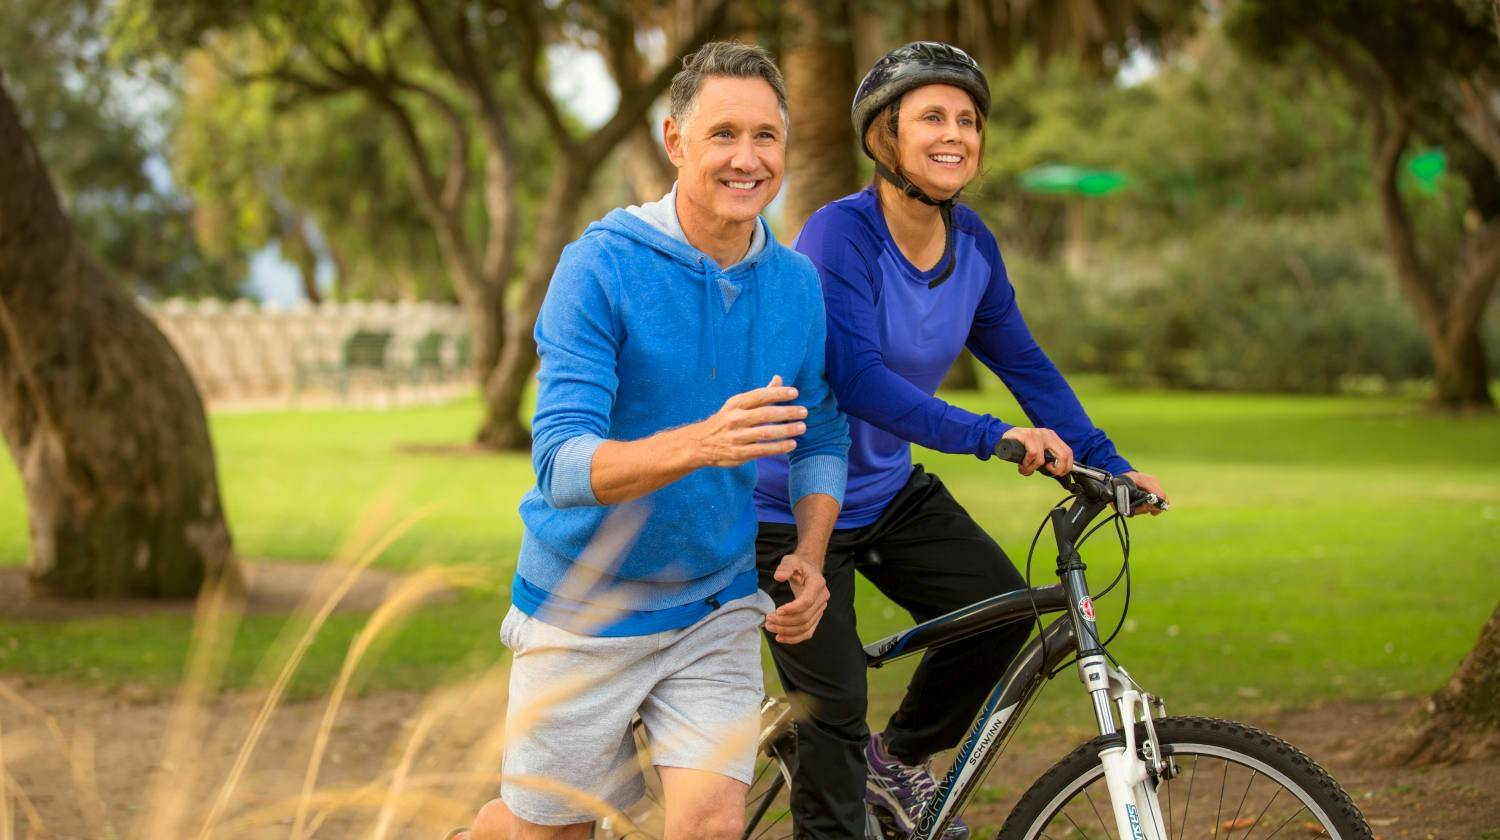 Featured | Elder couple exercising in the park | Best Foods for Joint Health and Fighting Arthritis